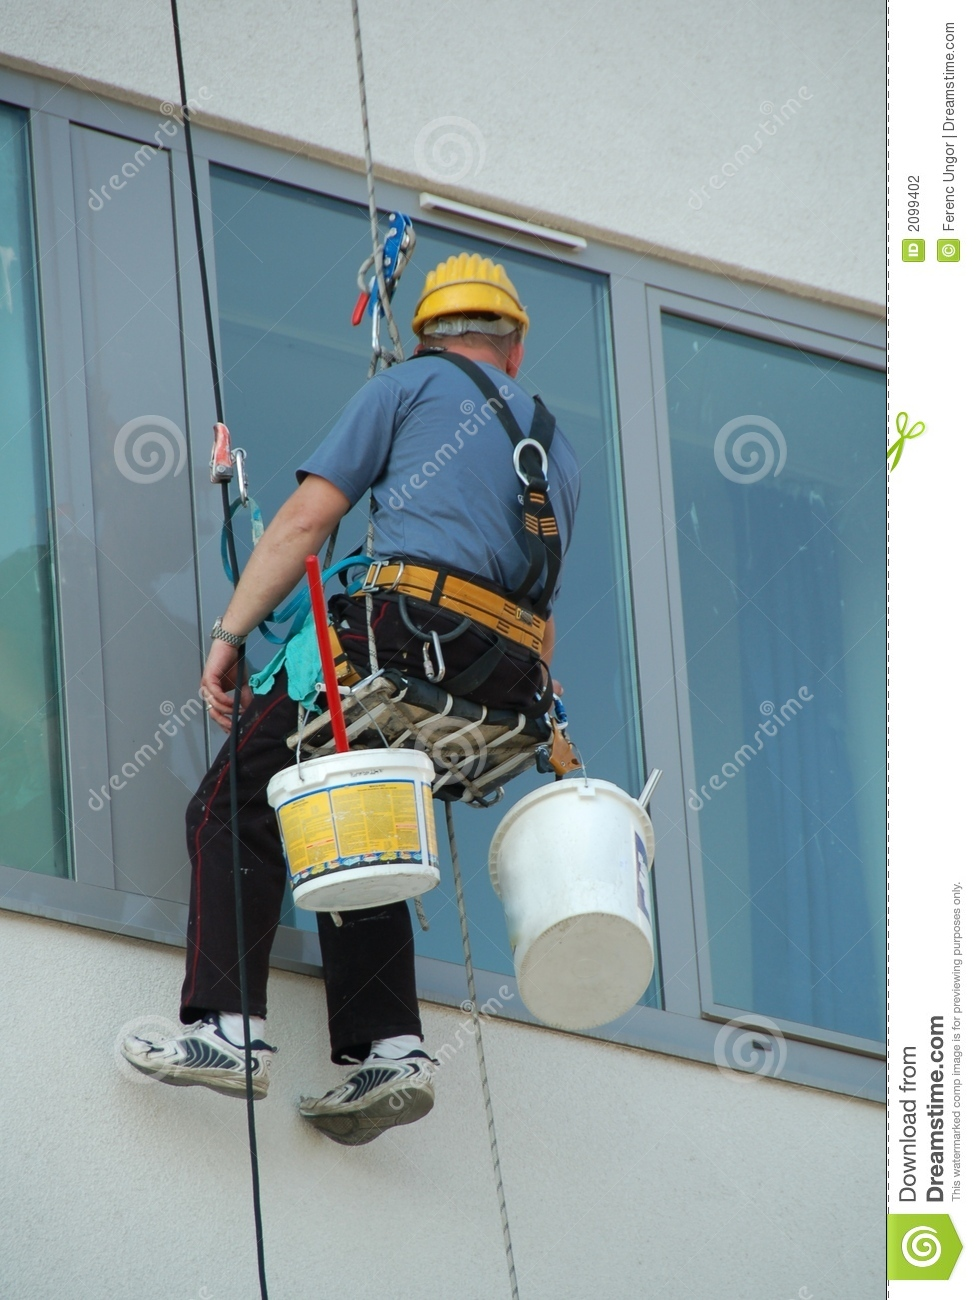 how to clean outside windows hdb